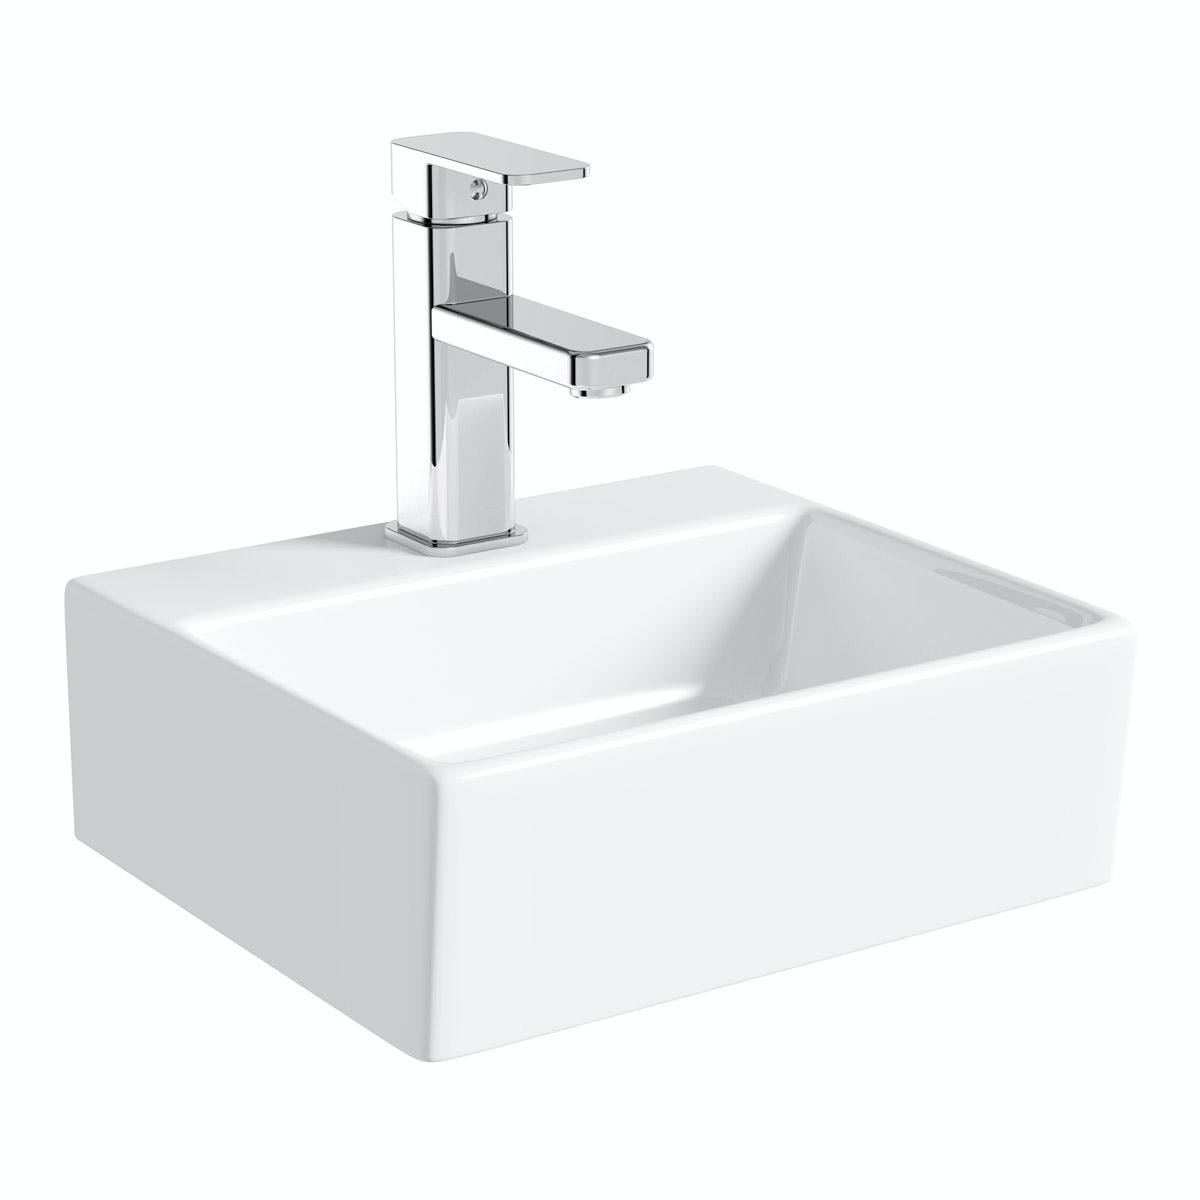 Harrop counter top basin